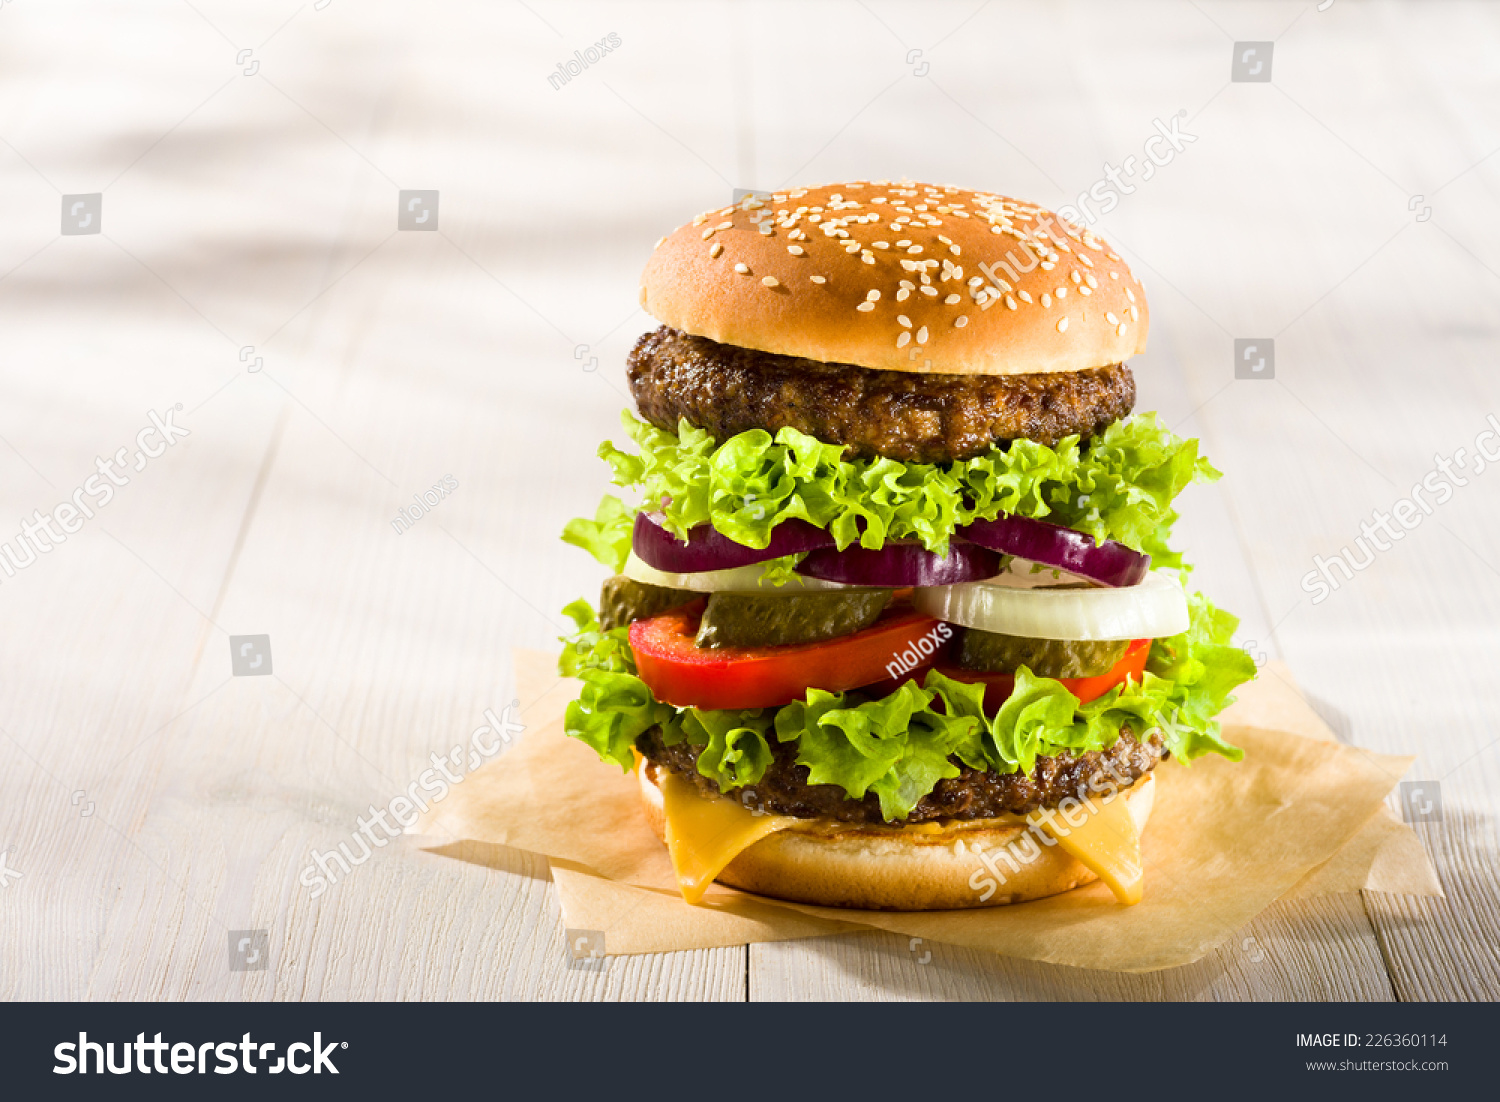 Homemade burger on wooden table stock photo 226360114 for Table burger